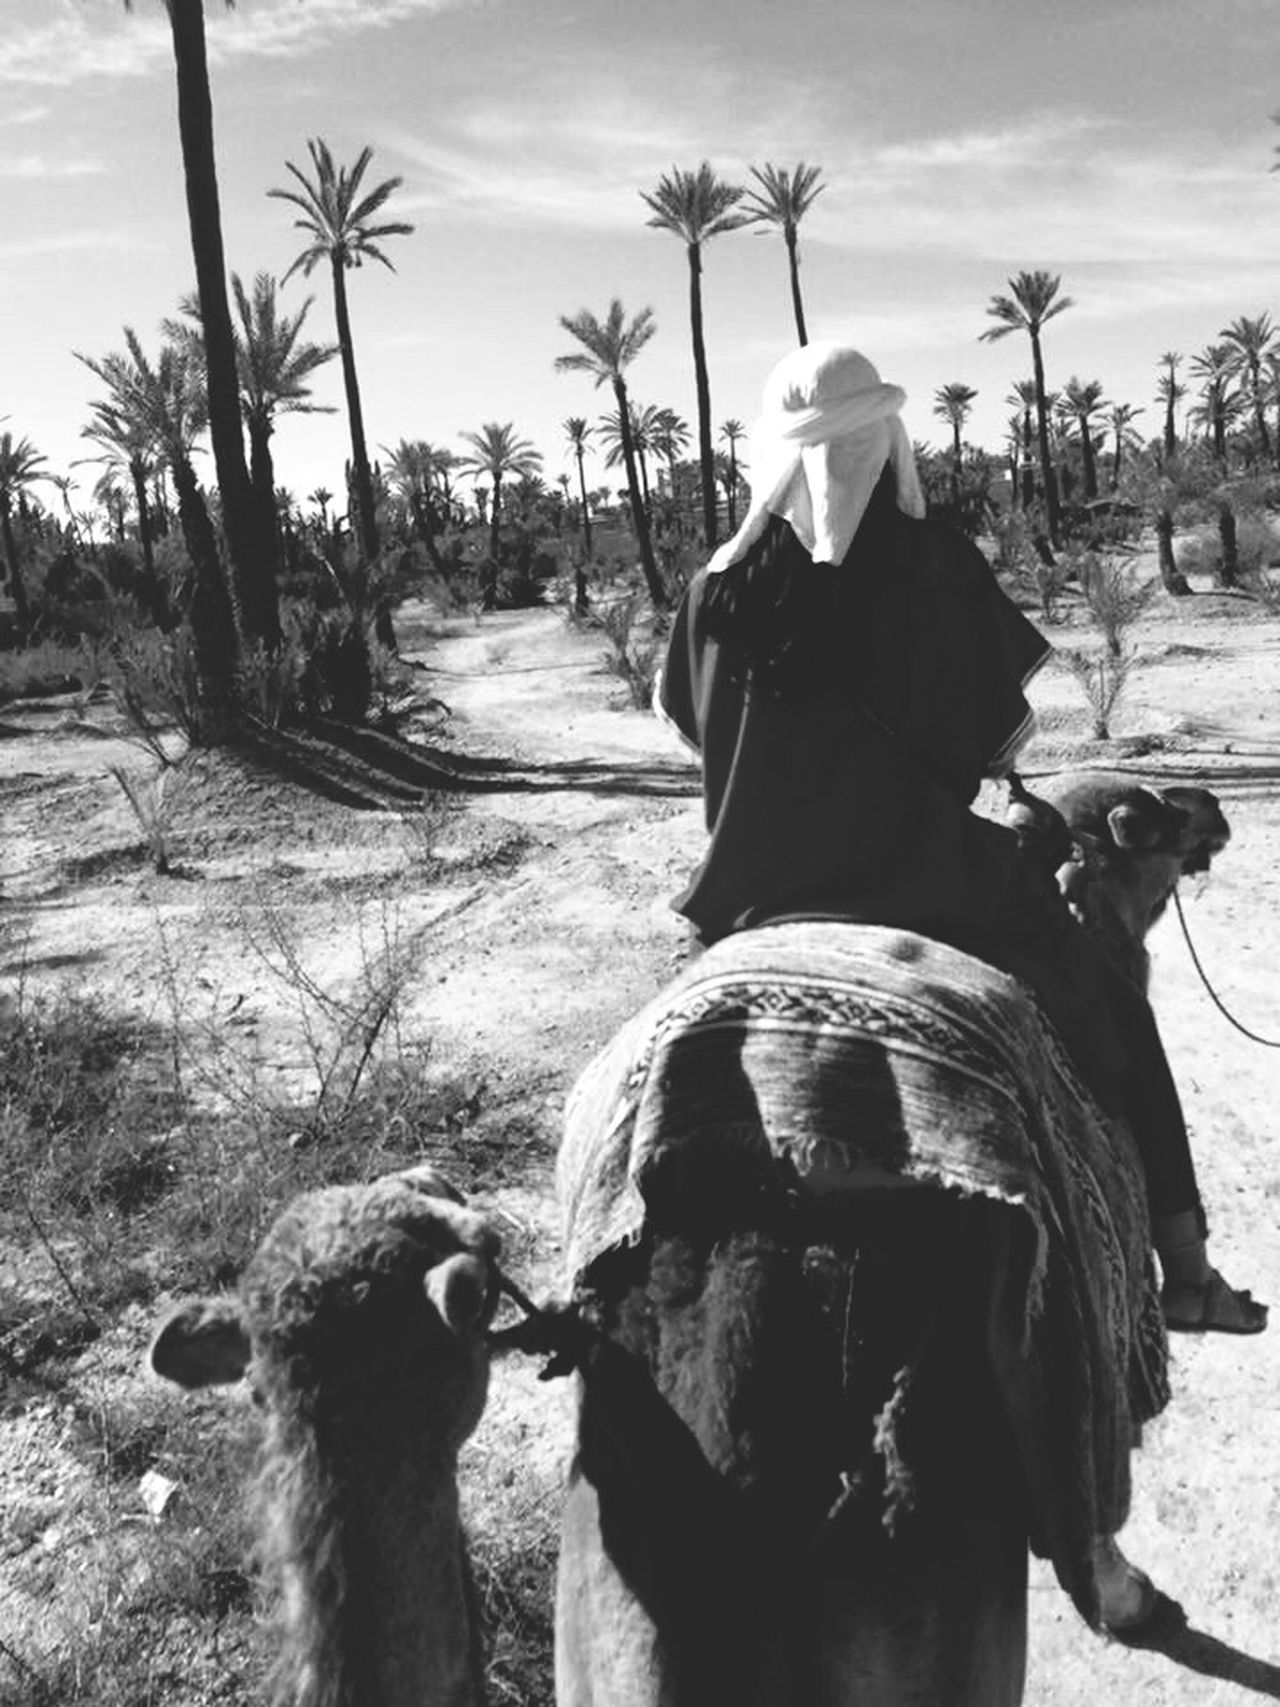 Marruecos Domestic Animals Horse Mammal Rear View One Animal Real People Tree Working Animal Field Palm Tree Day One Person Livestock Sky Men Outdoors Nature Women